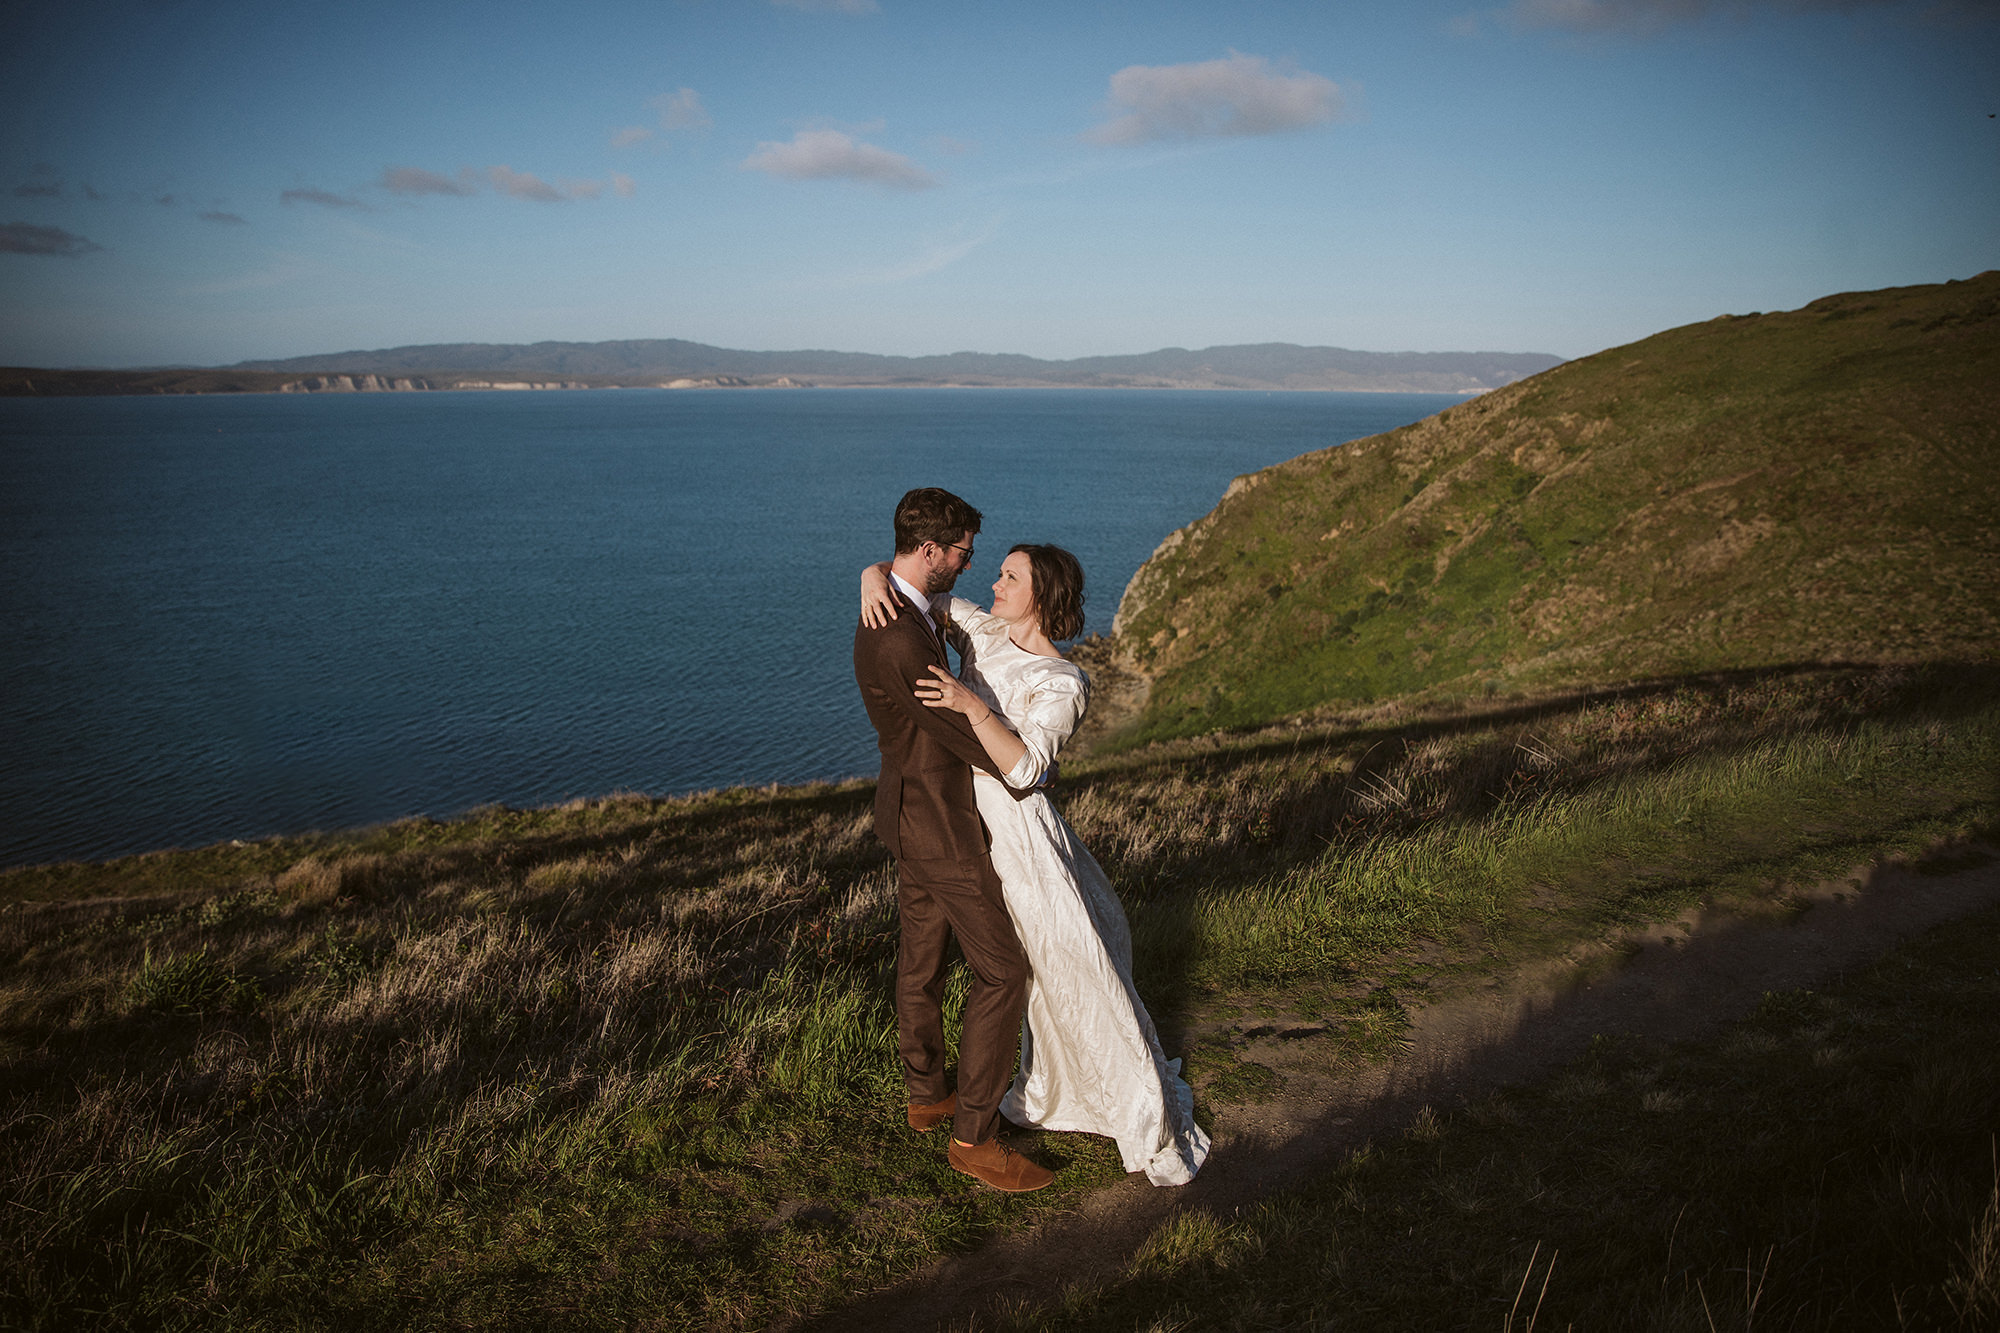 Bride and groom embrace at Chimney Rock for Point Reyes Elopement.